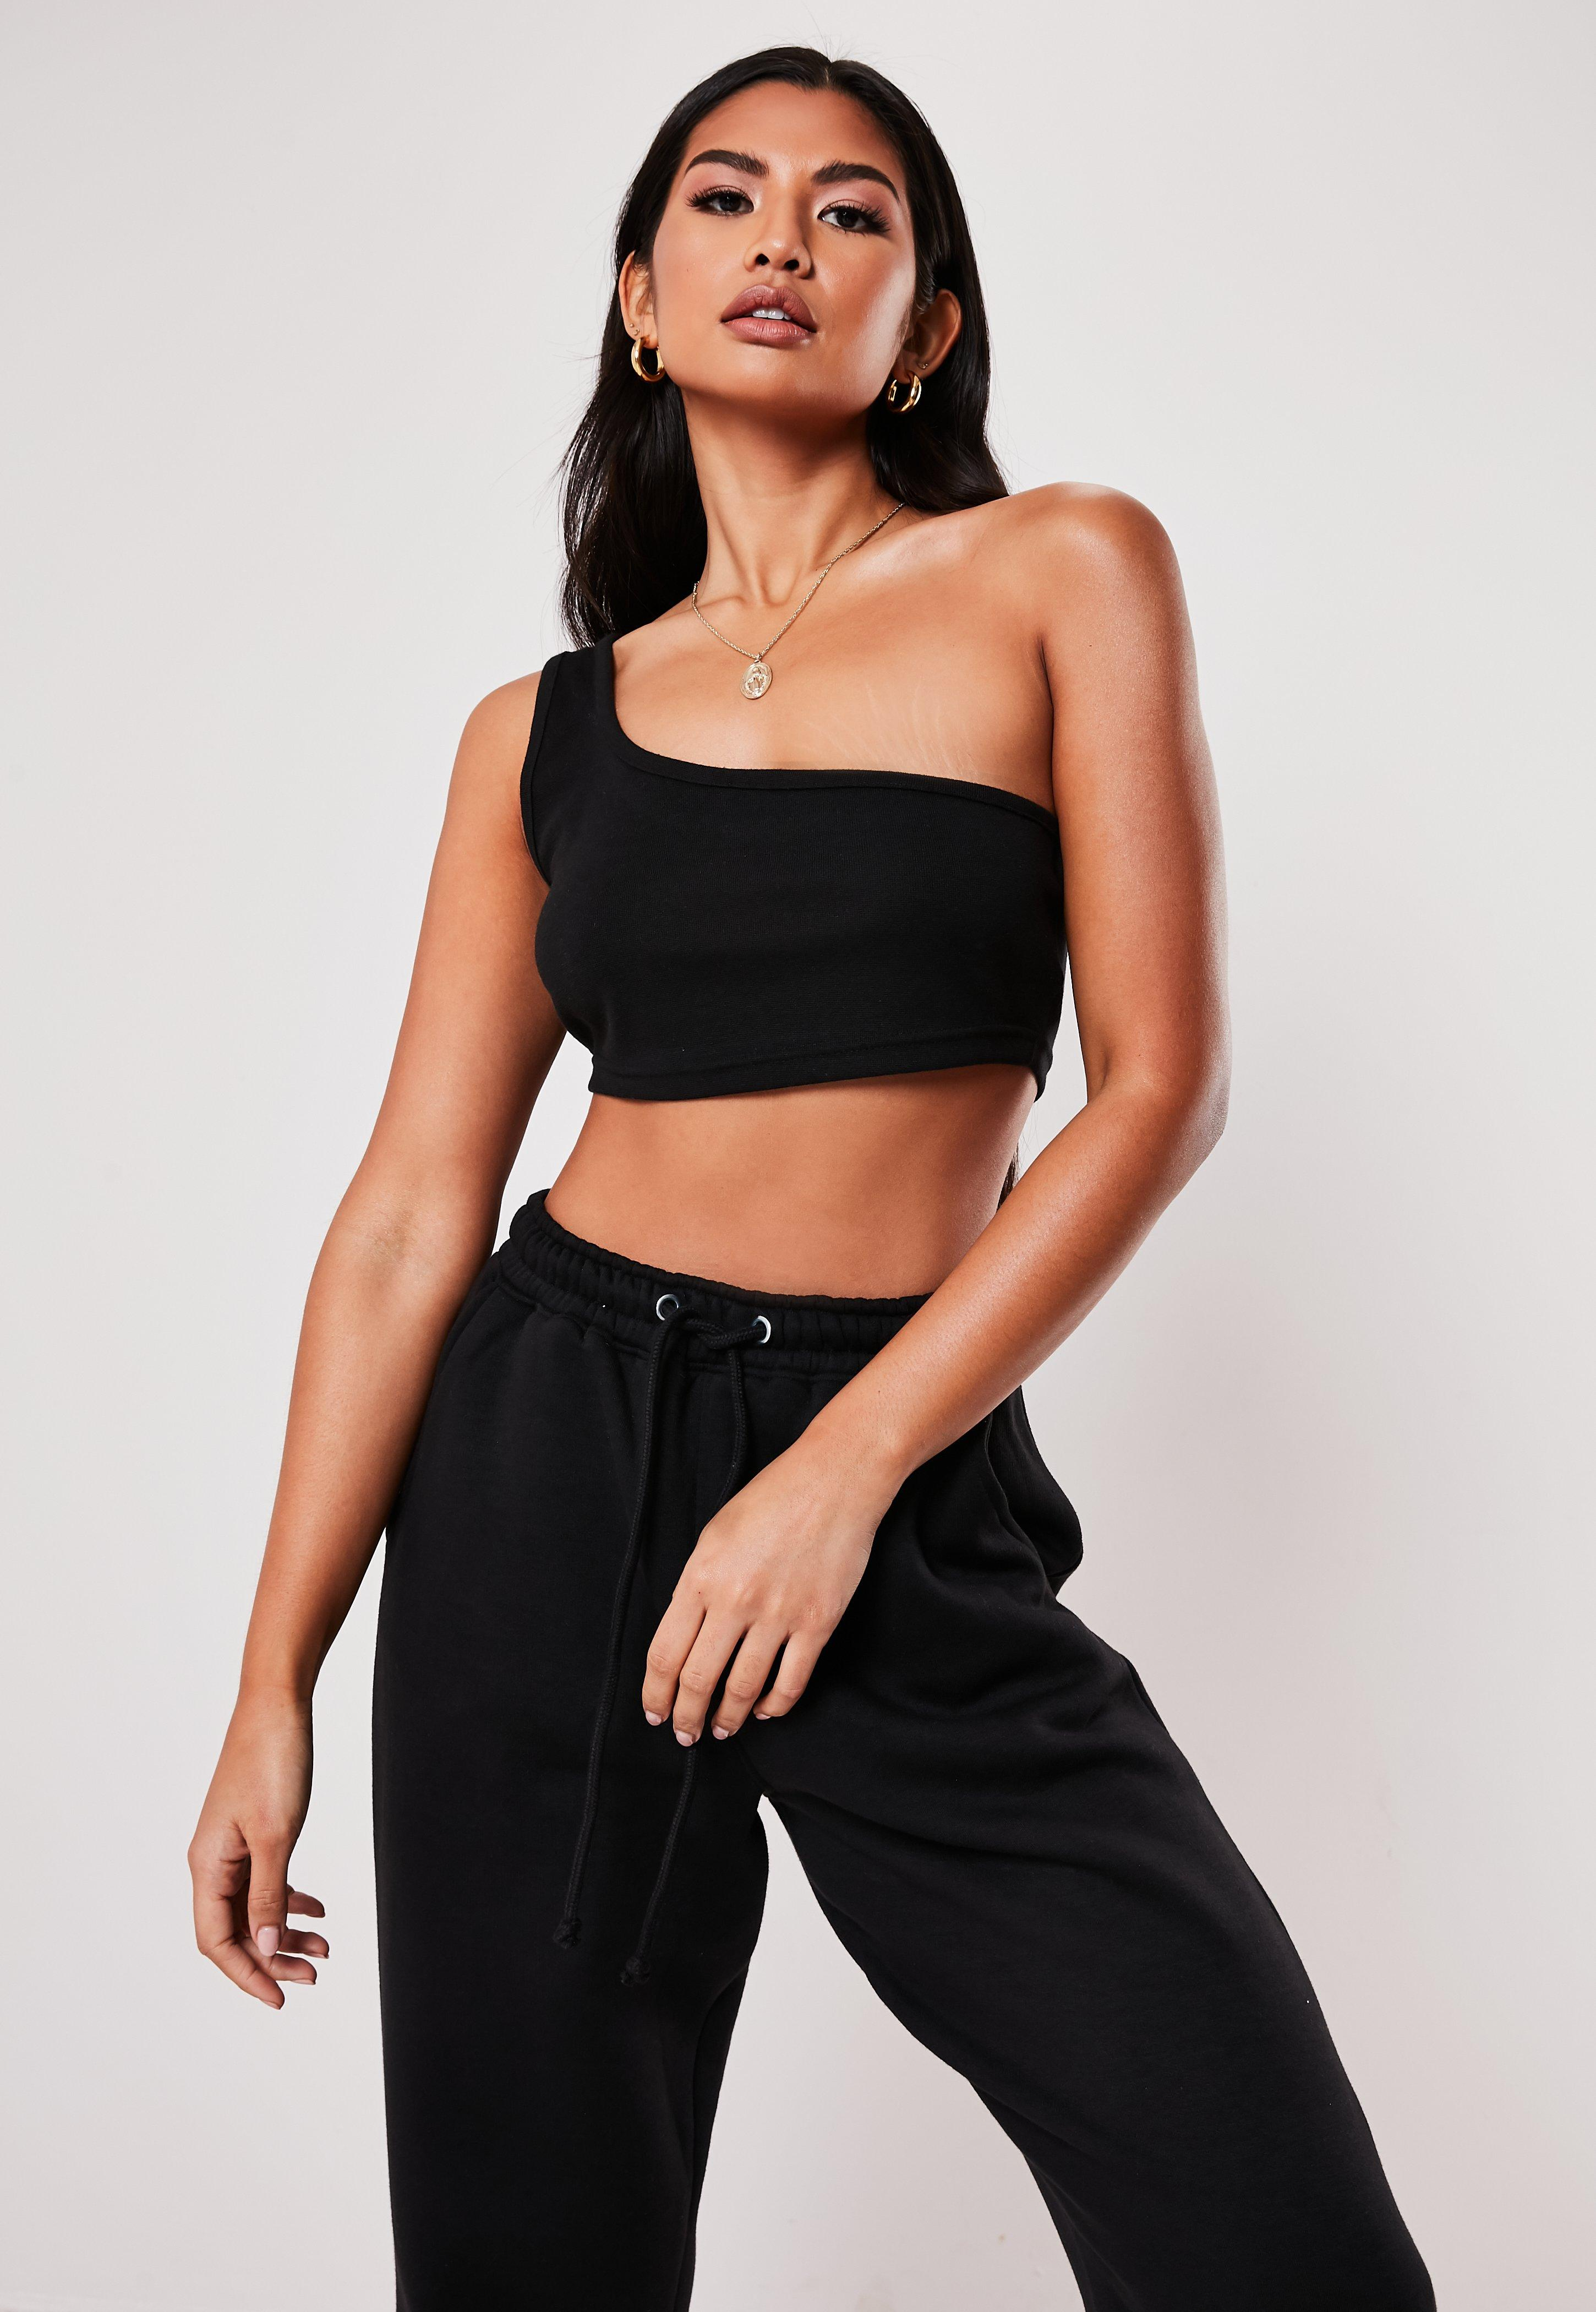 adbcb4941c9 Black Crop Tops | Plain Black Crop Tops - Missguided